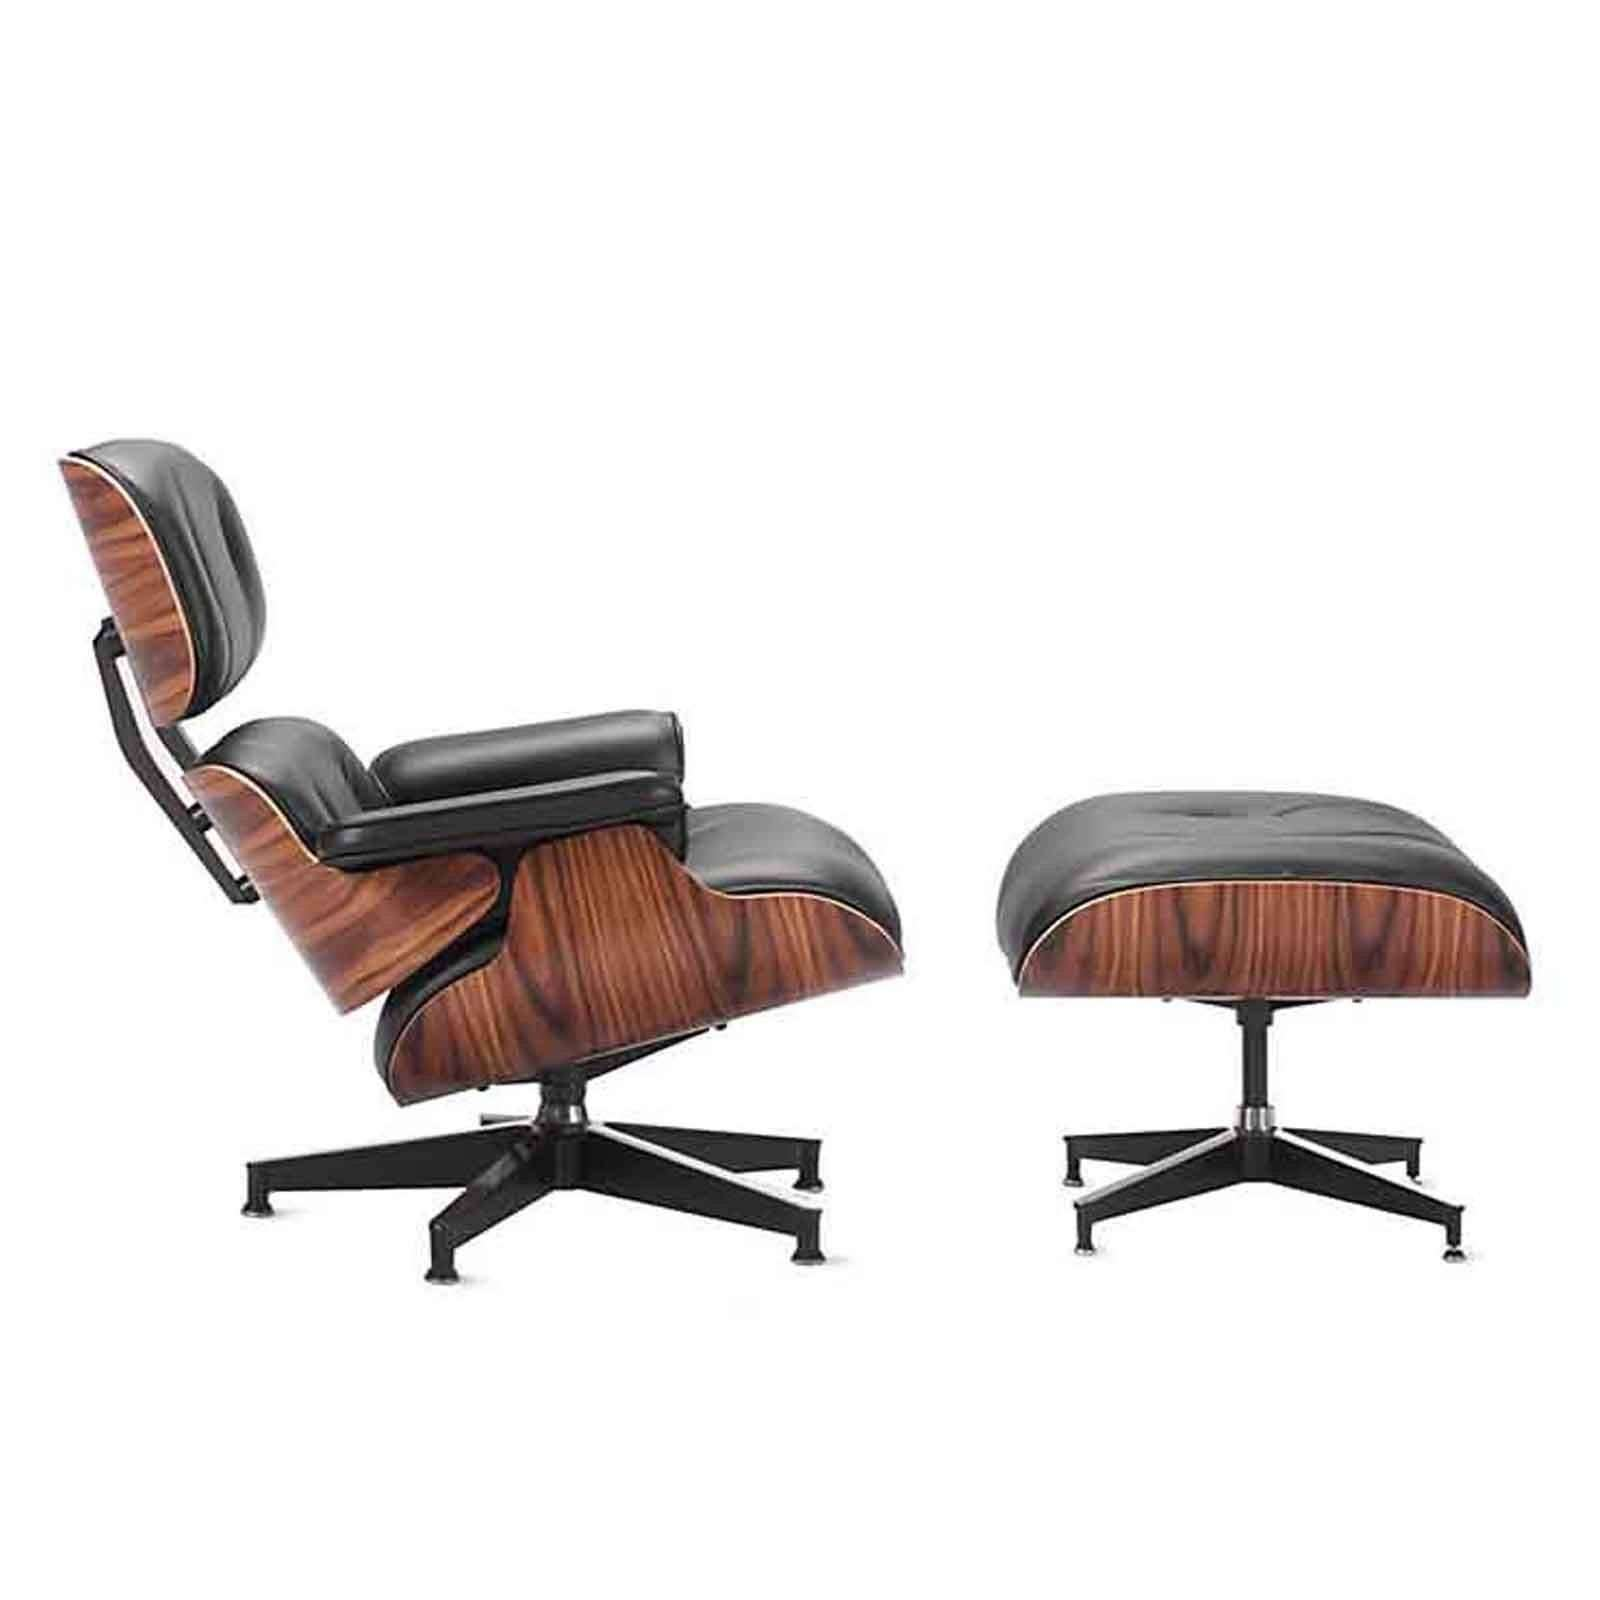 eames chair replica lounge chair ottoman modterior. Black Bedroom Furniture Sets. Home Design Ideas